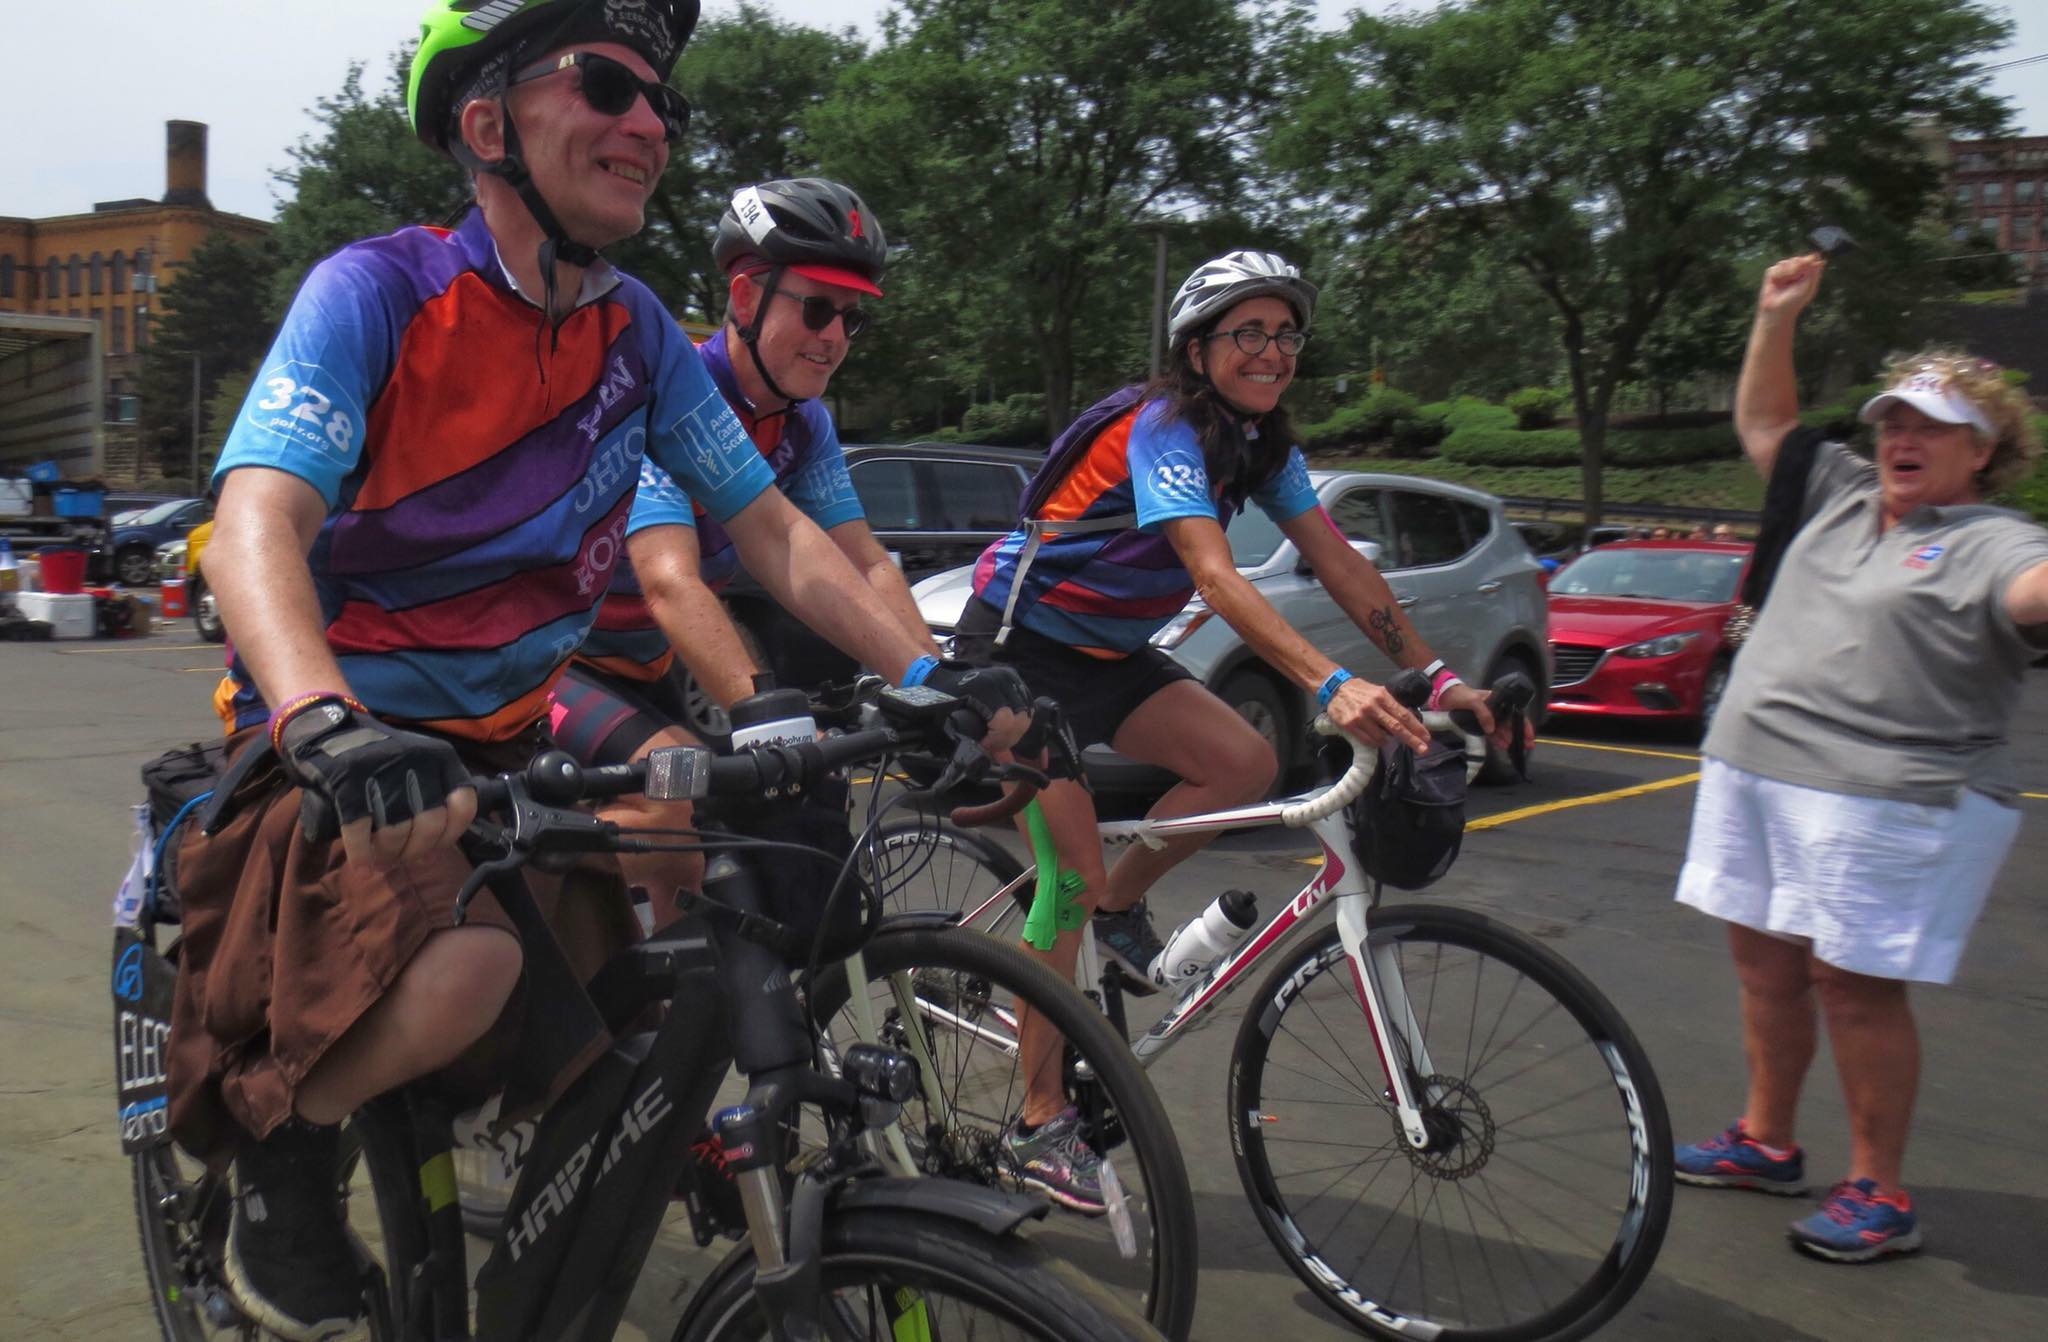 Nik, Joel and Kathleen being cheered on during the 2018 Pan-Ohio Hope Ride. Photo: Darrell McGrath